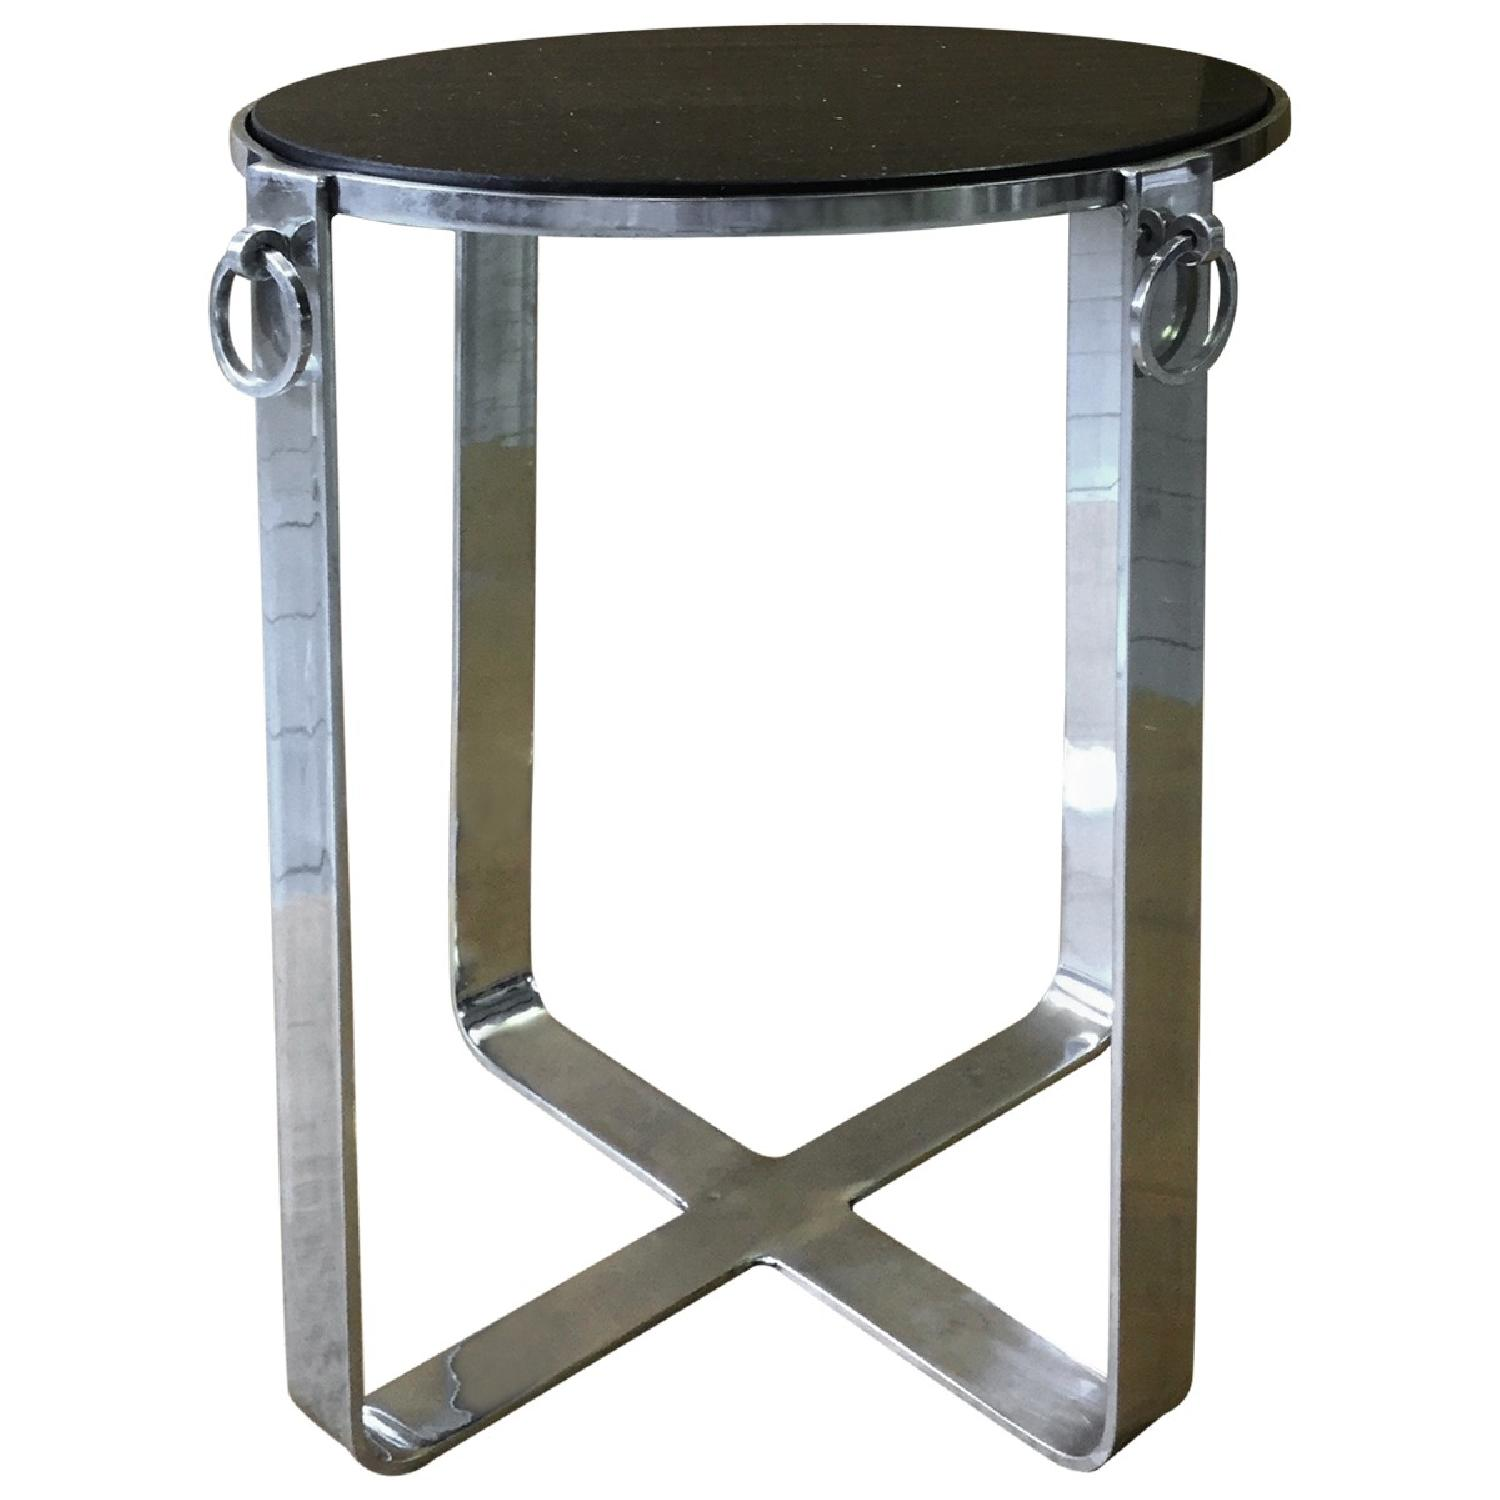 Metal Round Side Table w/ Glass Top - image-0